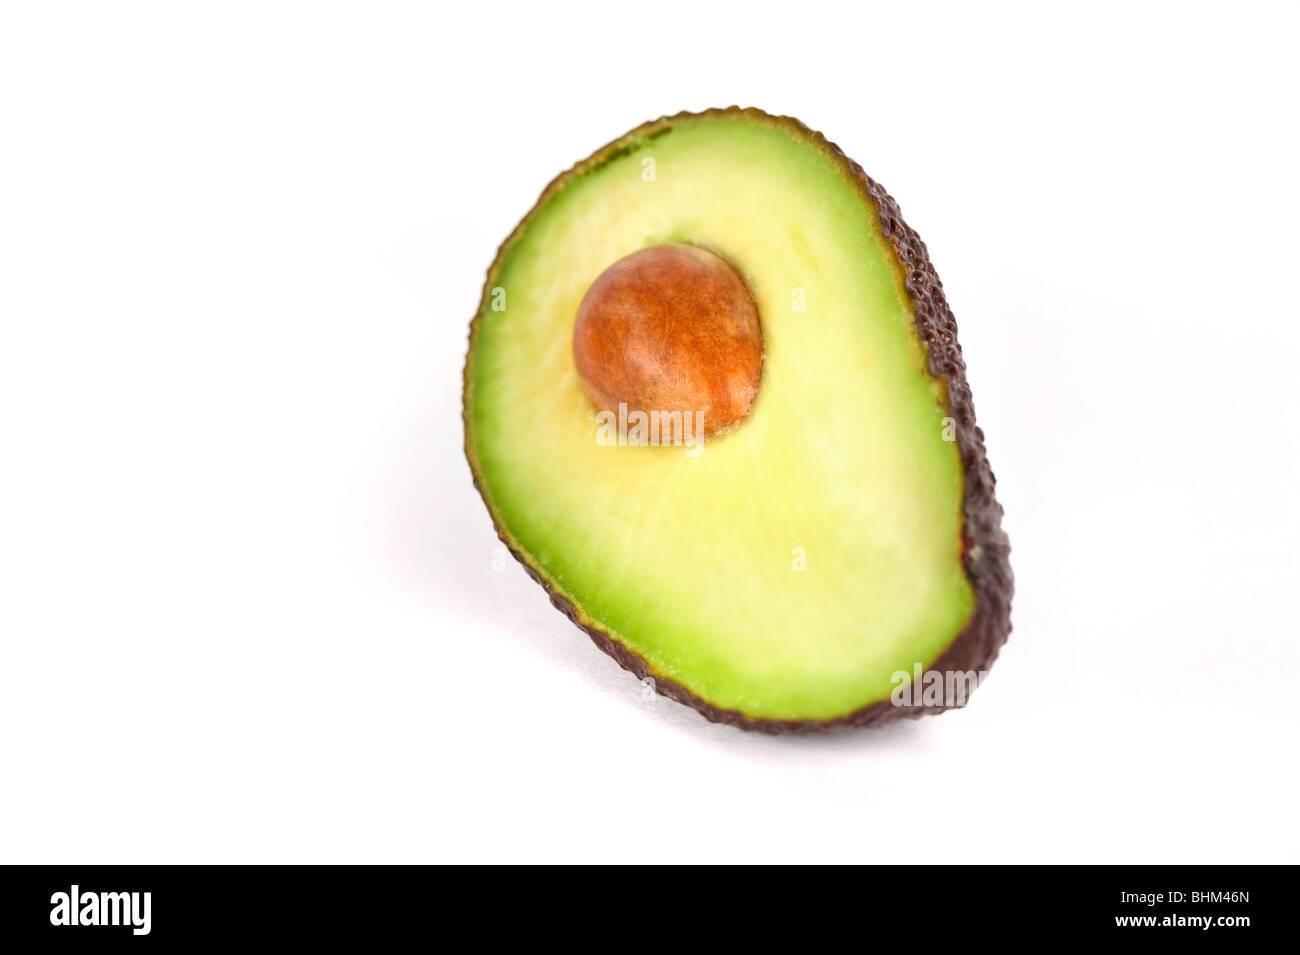 One avocado half with the stone/core on plain white background - Stock Image